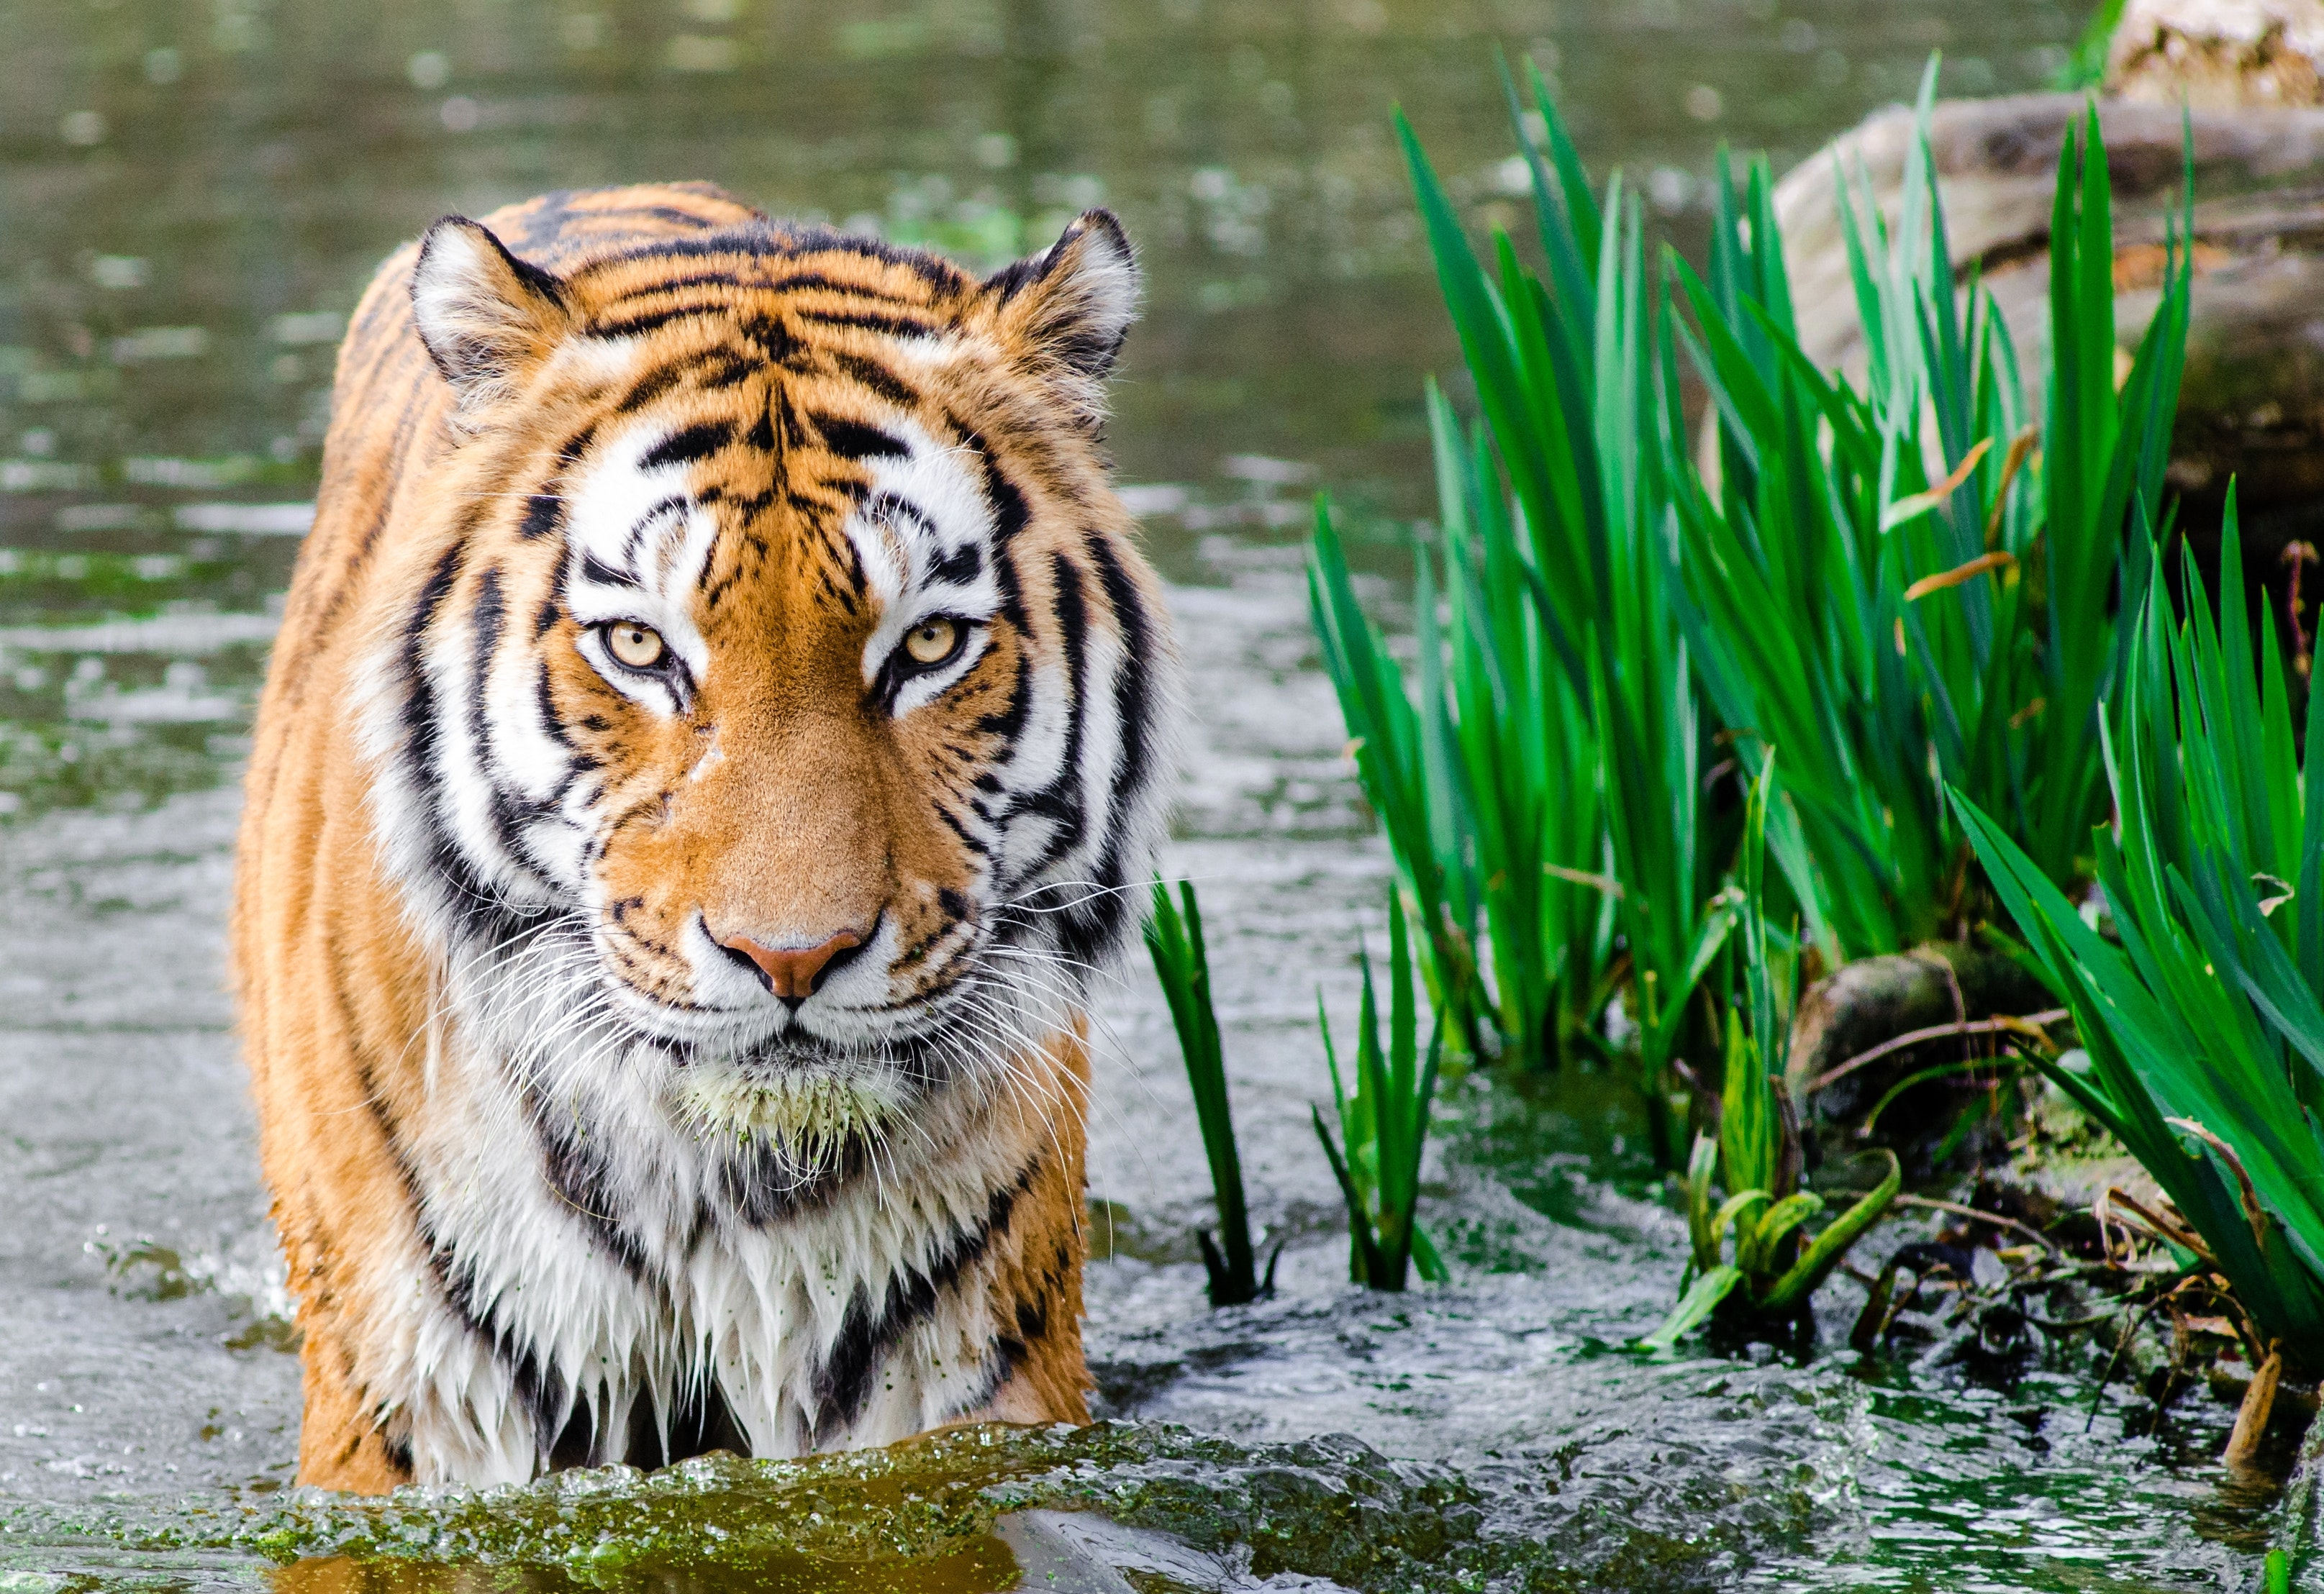 Bengal Tiger Half Soak Body on Water during Daytime, Tiger, Stripes, Plants, Water, HQ Photo